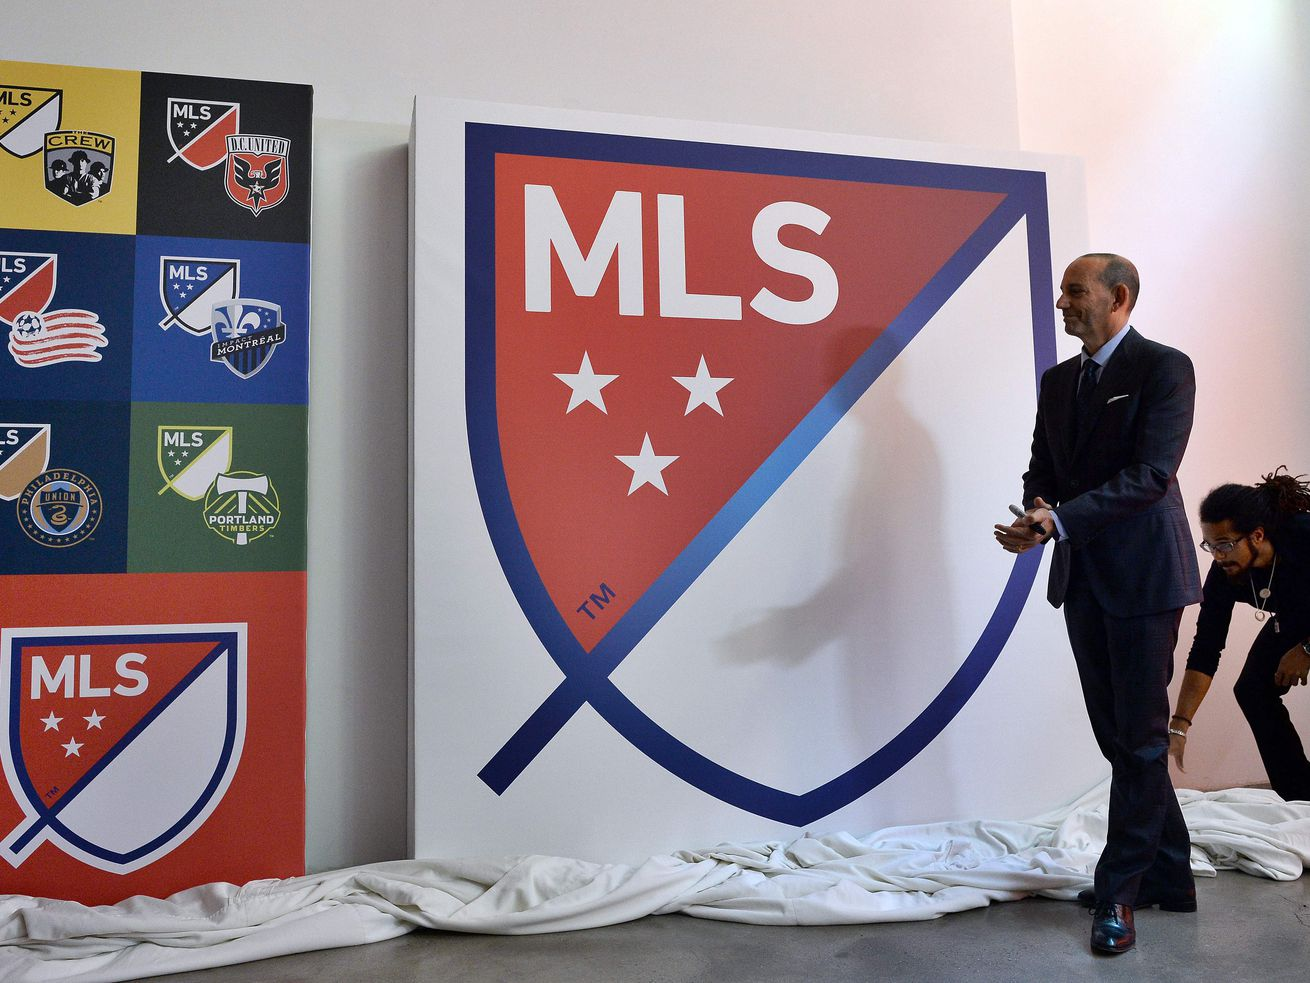 MLS players approve new contract, opening door for season to resume